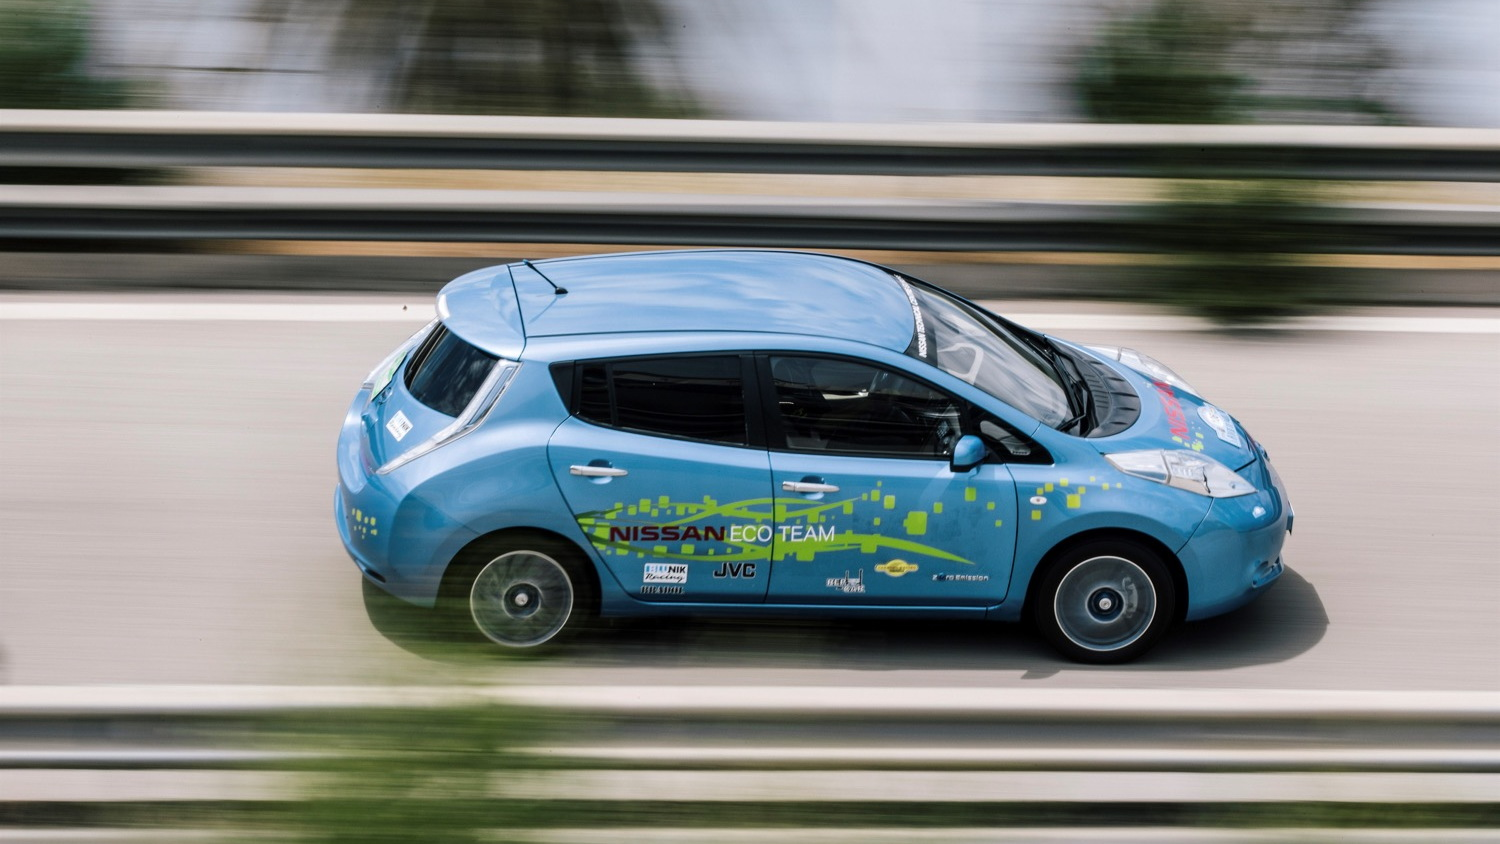 Nissan Leaf 48-kWh prototype built by employees